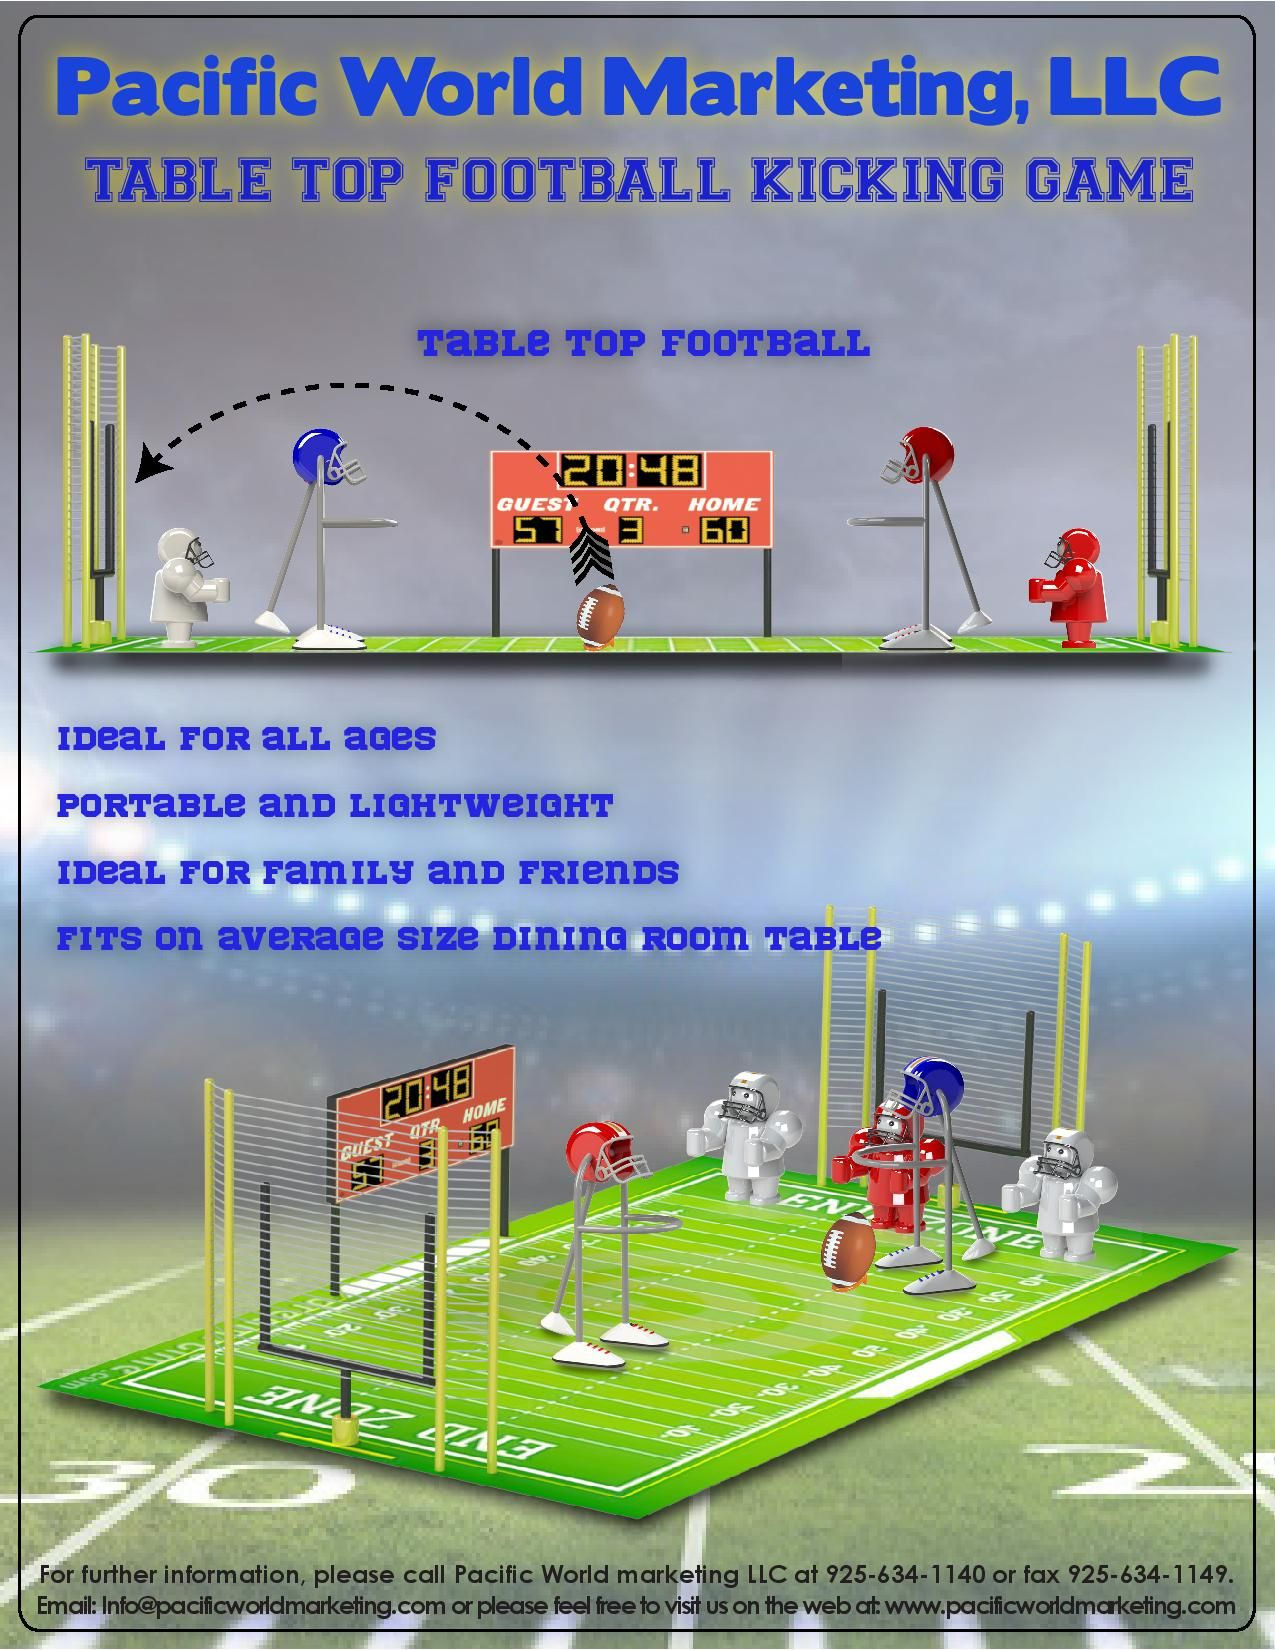 Table Top Football Kicking Game - PacificWorldMarketing.com - Products Available for Licensing